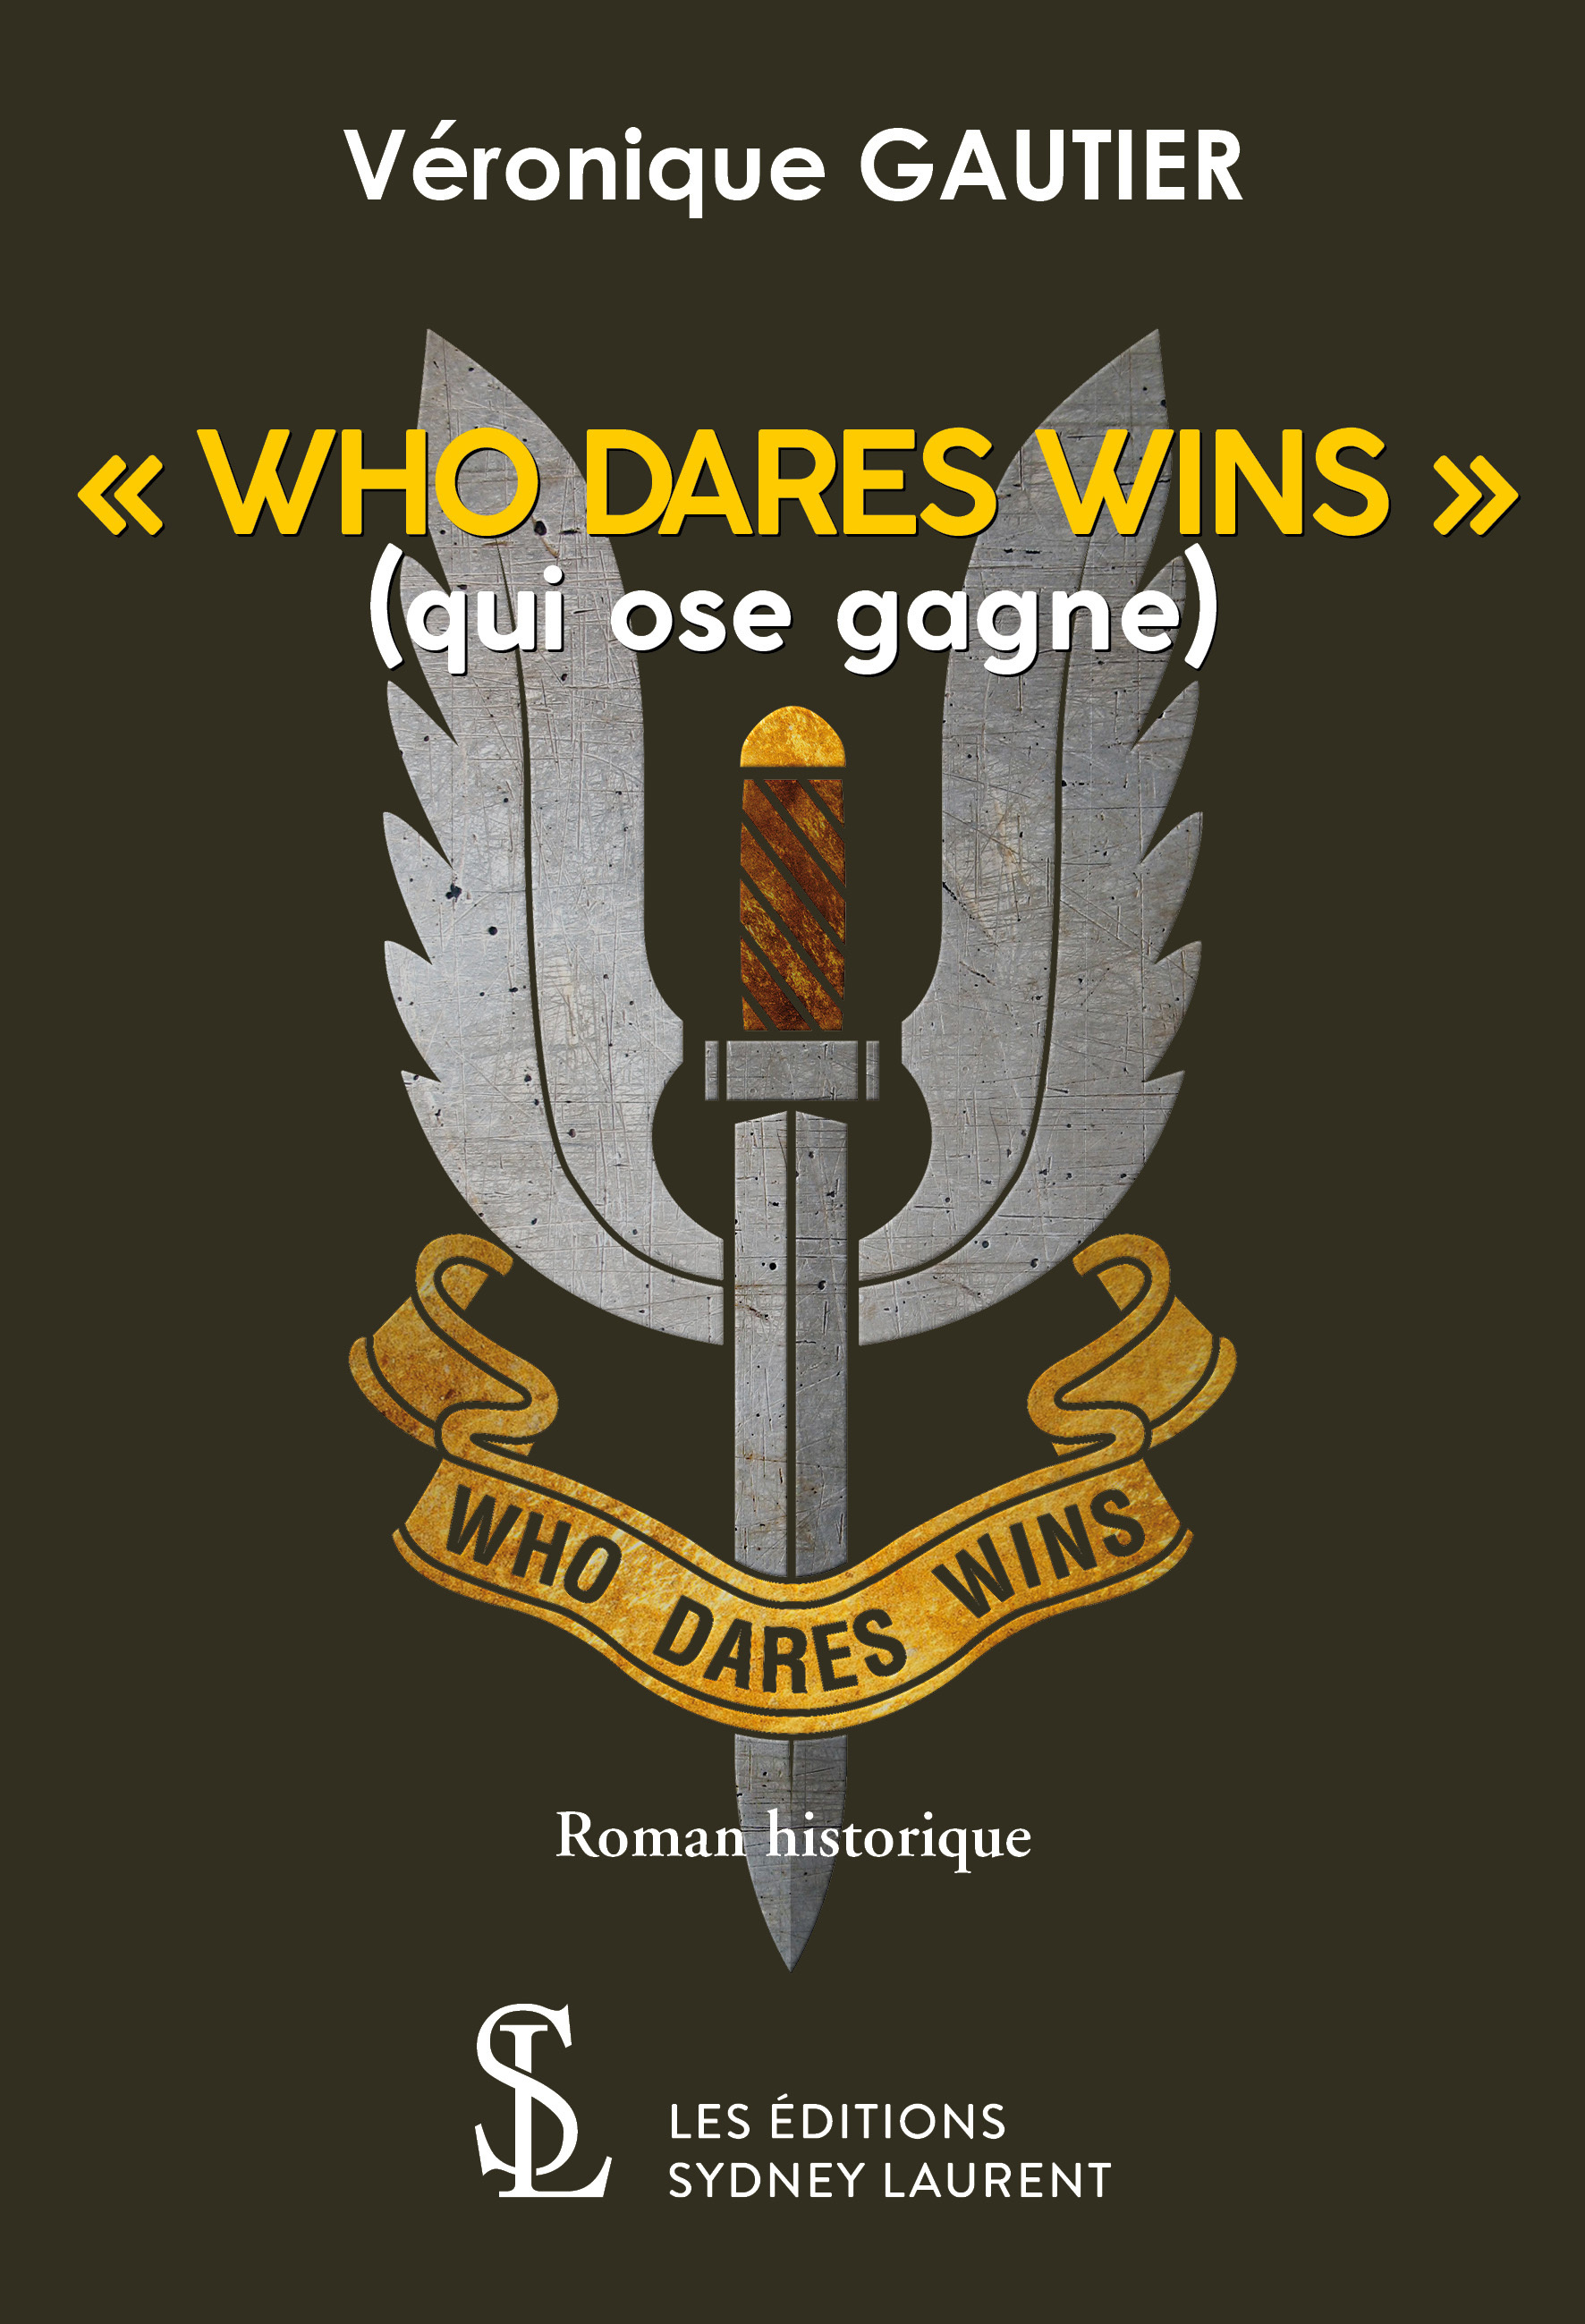 """ WHO DARES WINS ""  (QUI OSE GAGNE)"